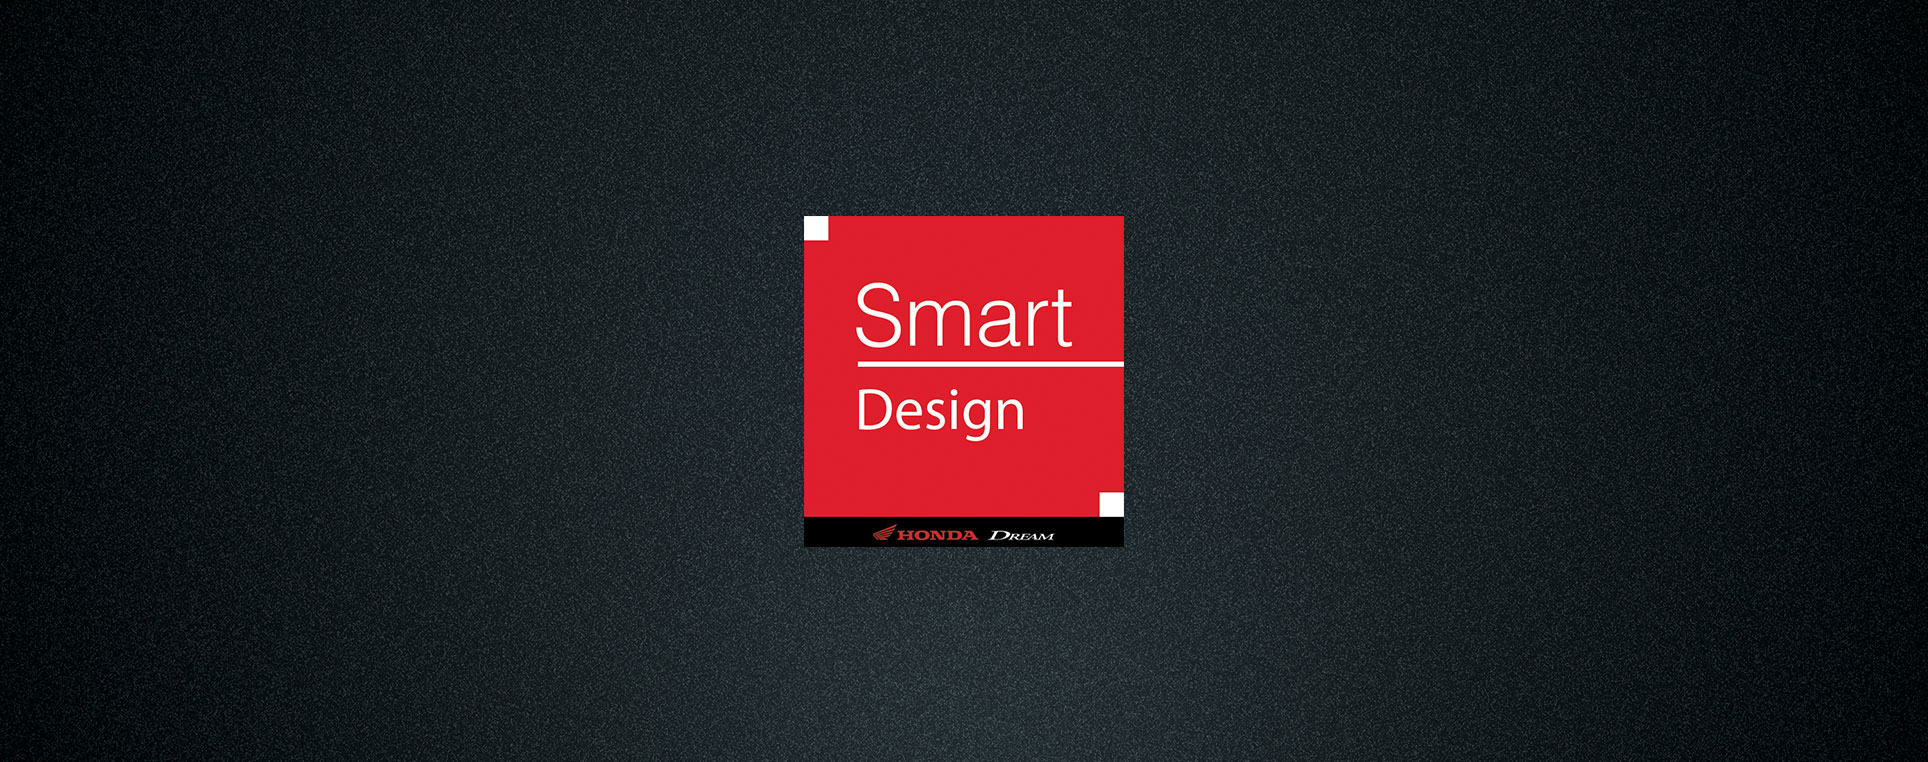 Logo Campanha Honda Dream - Smart Design